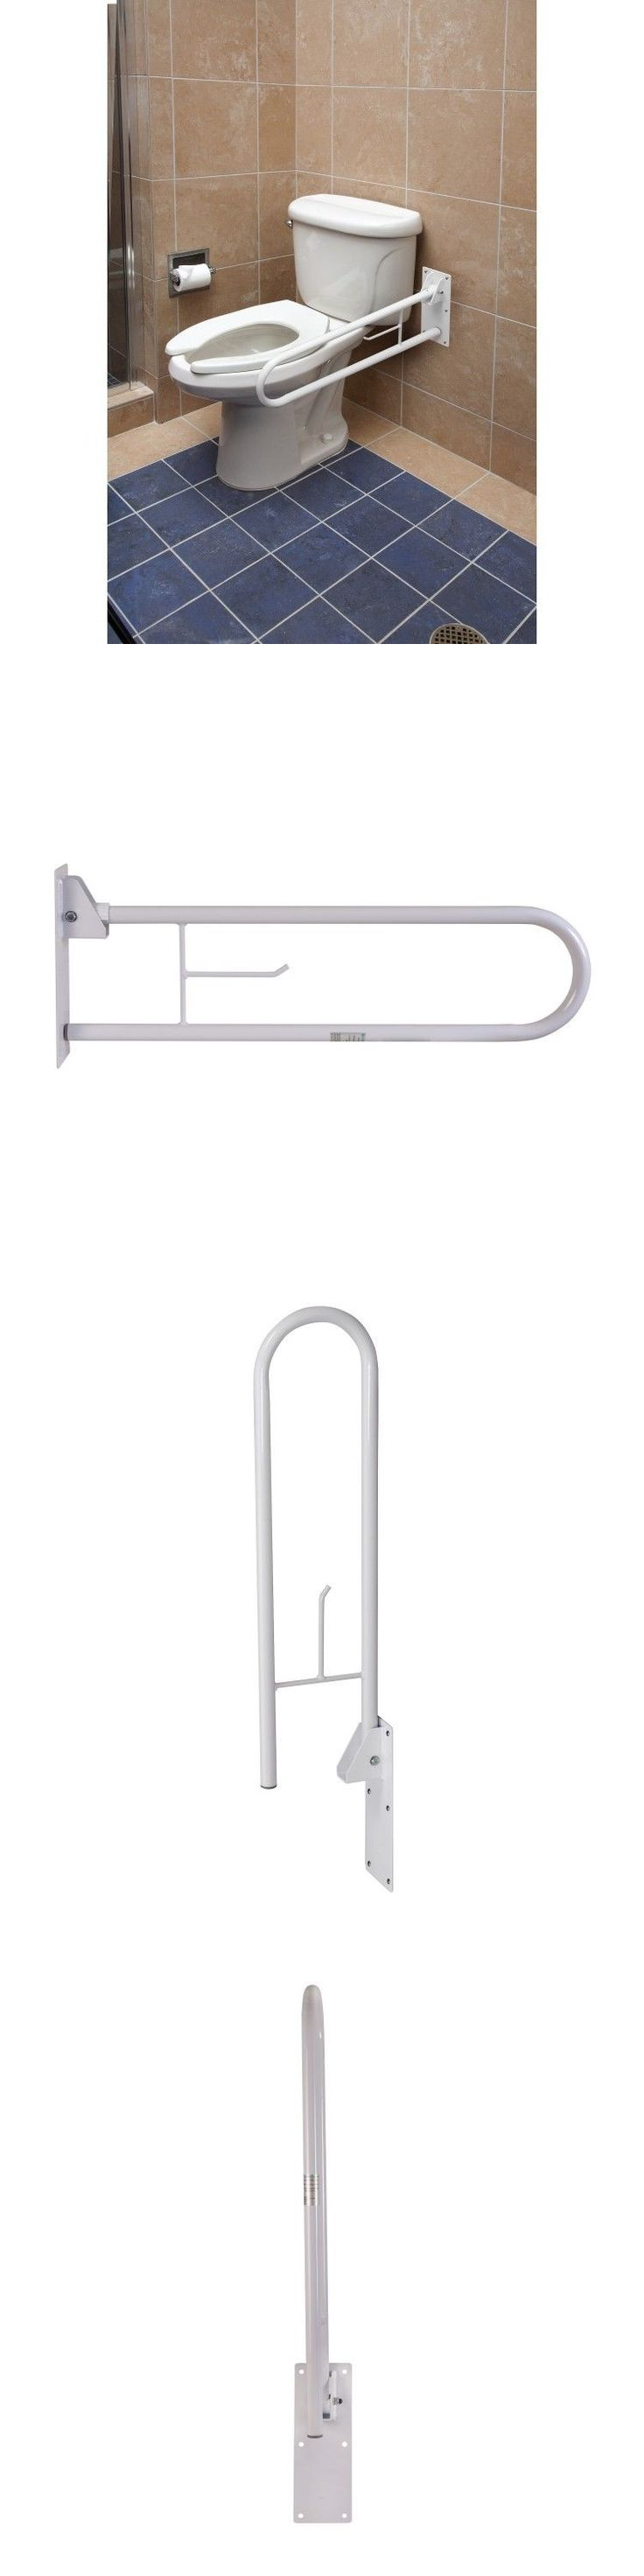 Handles and Rails: White Bathroom Grab Bar Fold Away Safety Rail Handicap Mobility Aid Support BUY IT NOW ONLY: $98.55